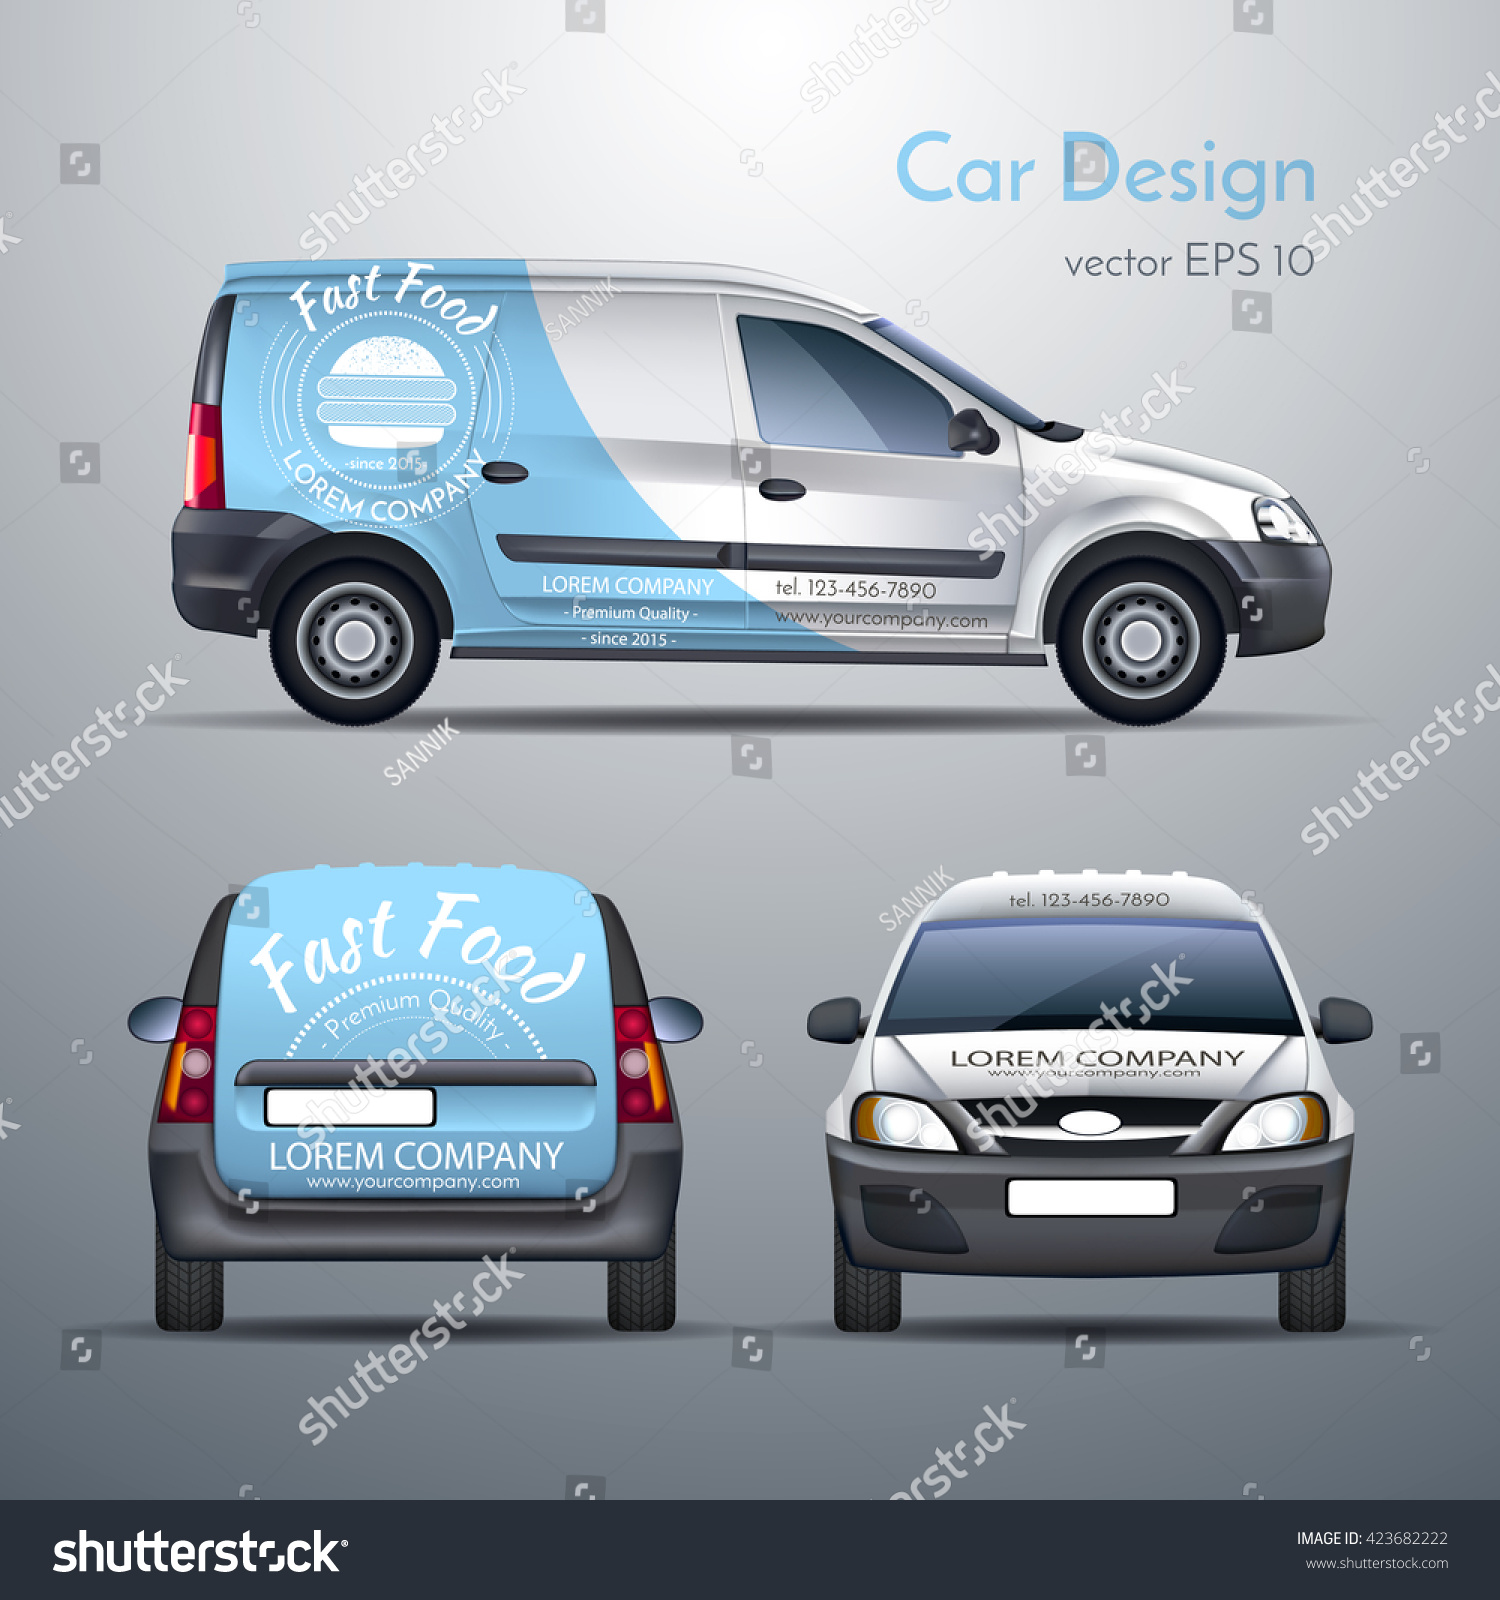 Bumper sticker design template - Realistic Vector Illustration Of A Car Template Design Stickers On The Car Food Delivery